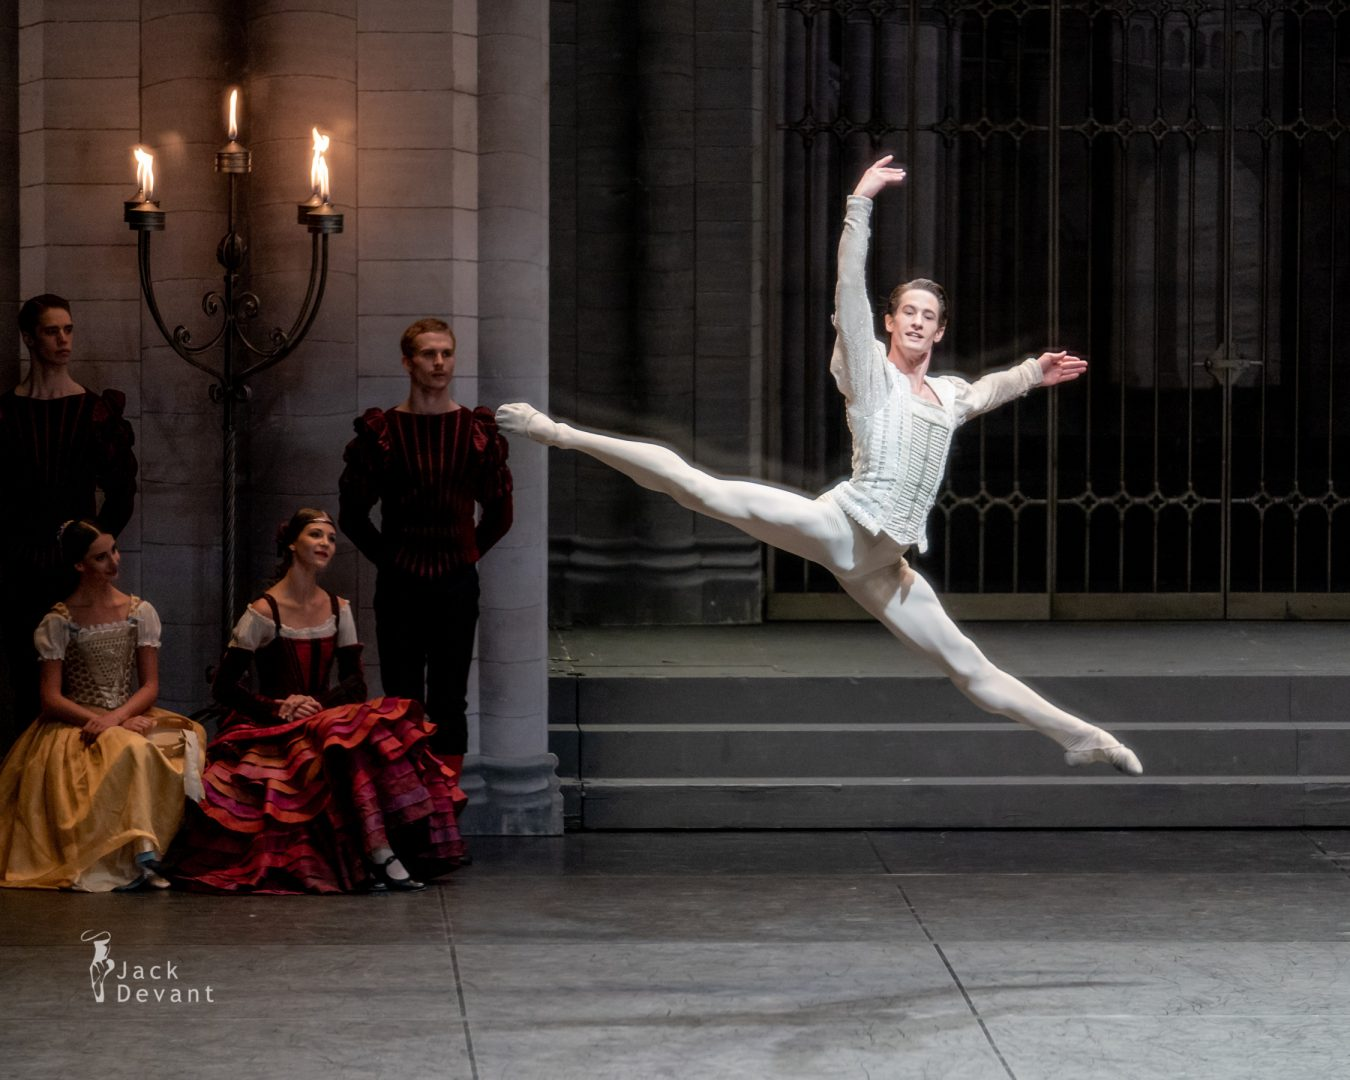 Alexander Jones in Swan Lake pdd variation 5